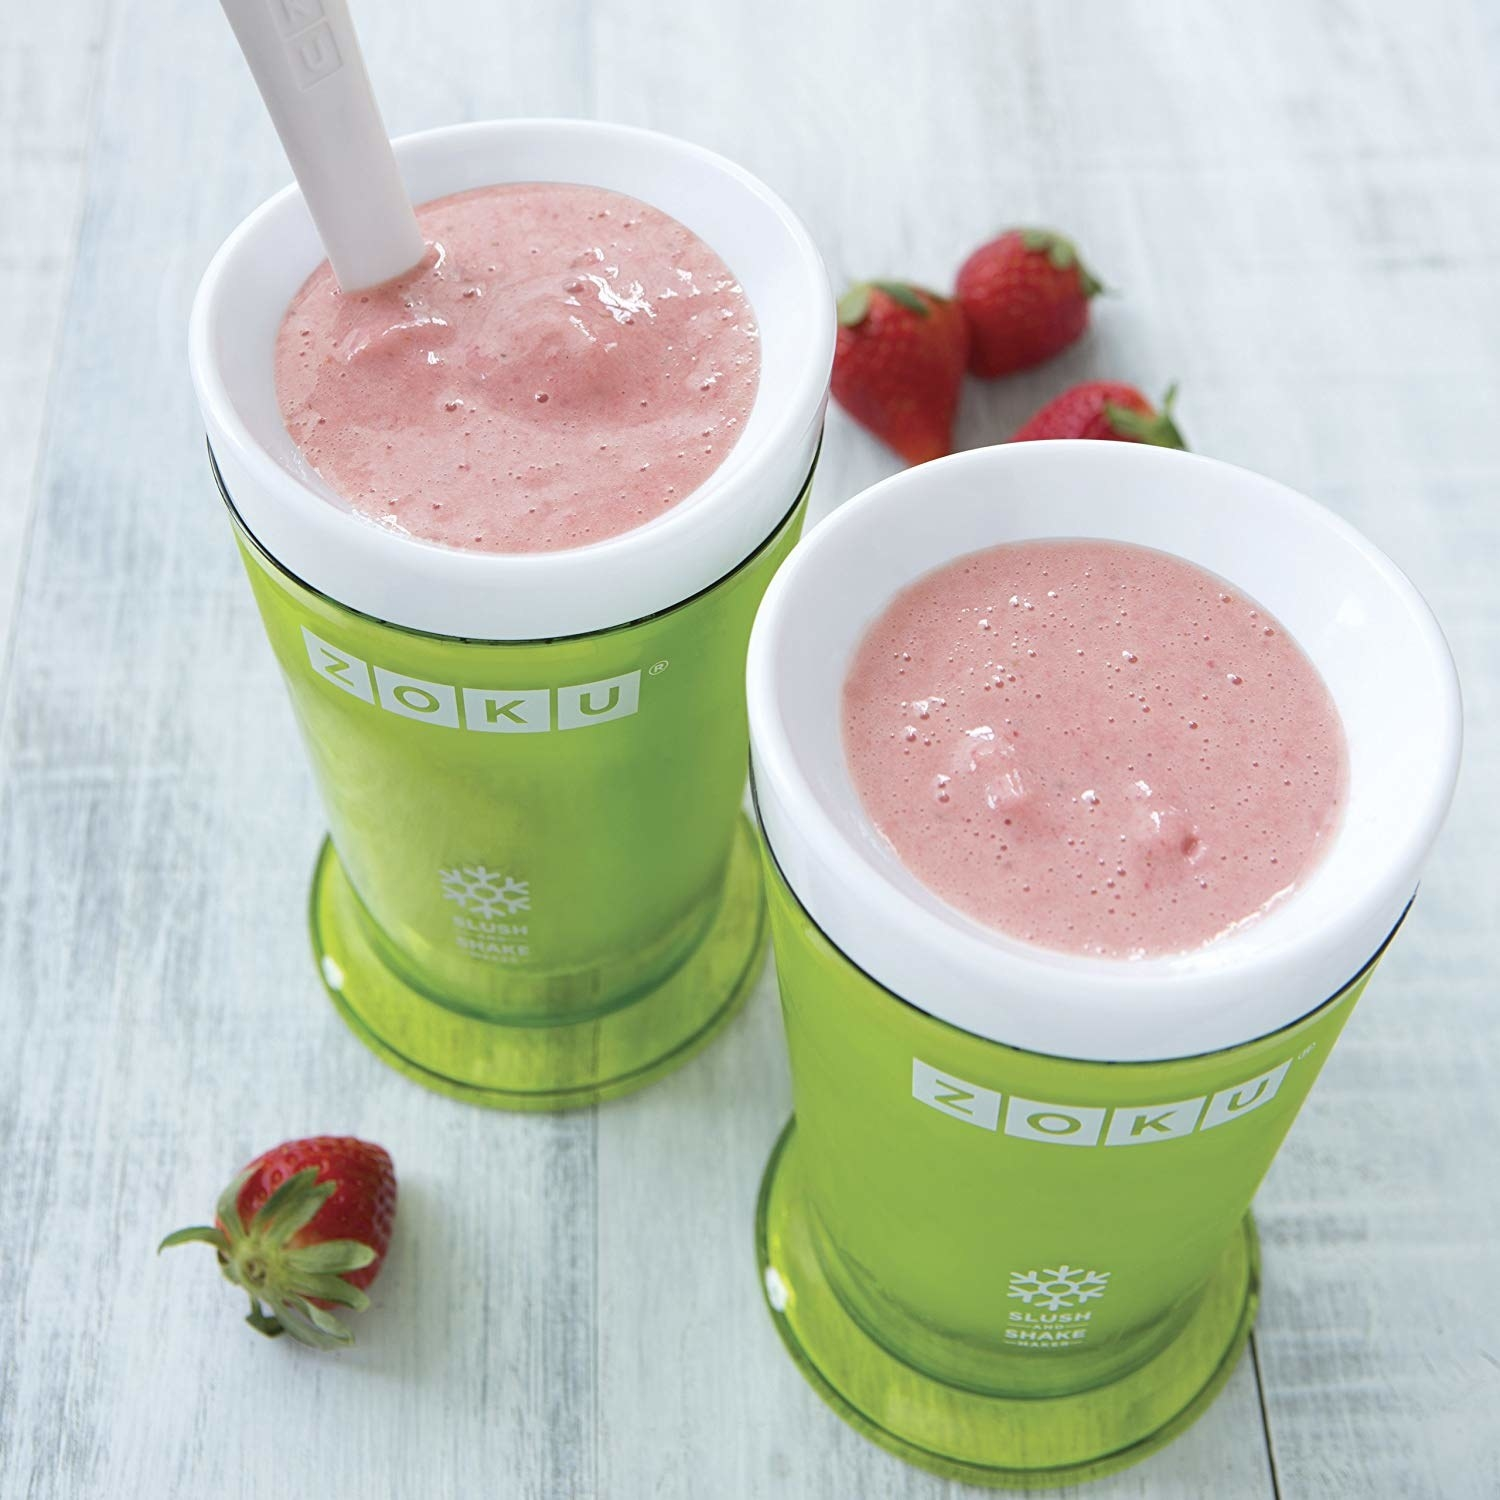 Two green, tall cups with pink strawberry smoothie in them that looks slush-like